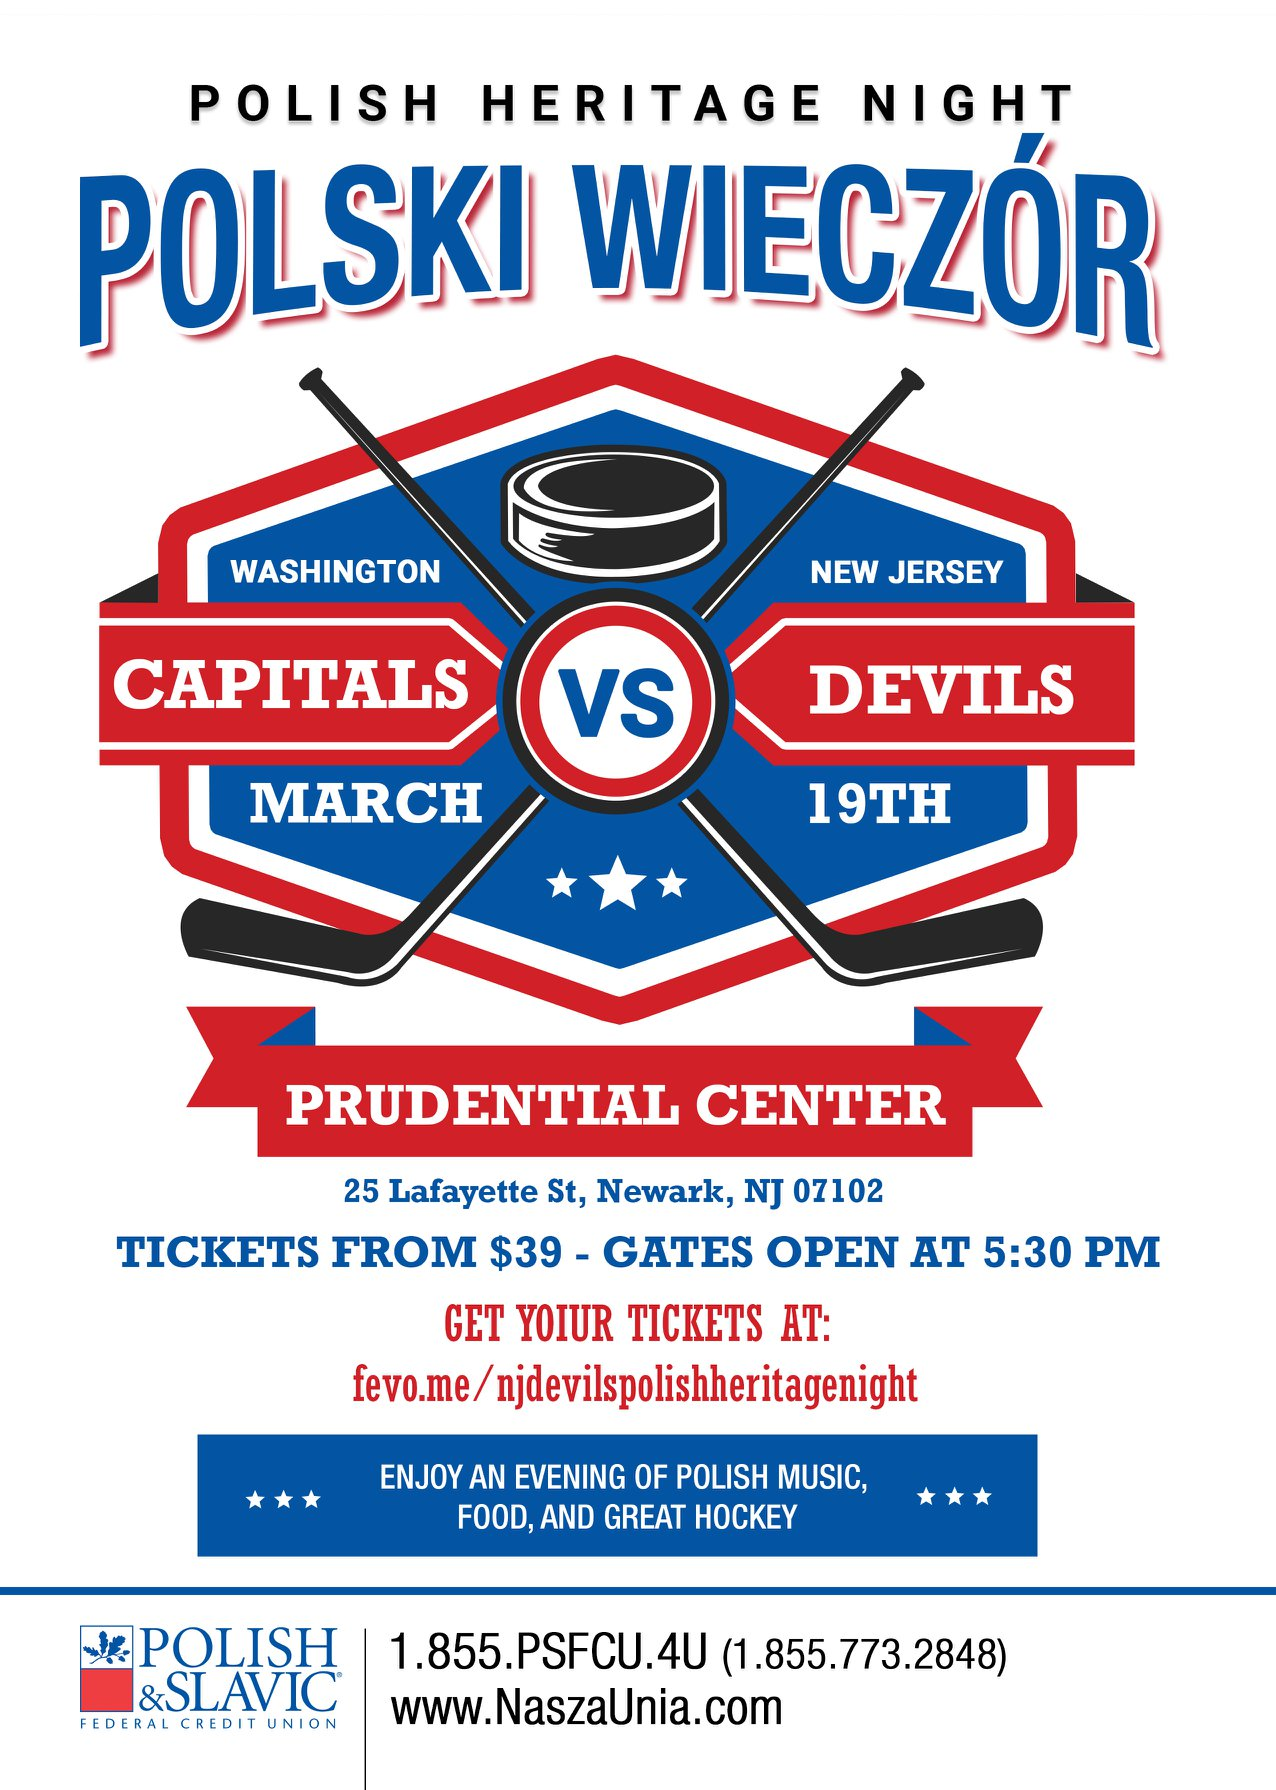 NJ: Polish Heritage Night with New Jersey Devils and Washington Capitals